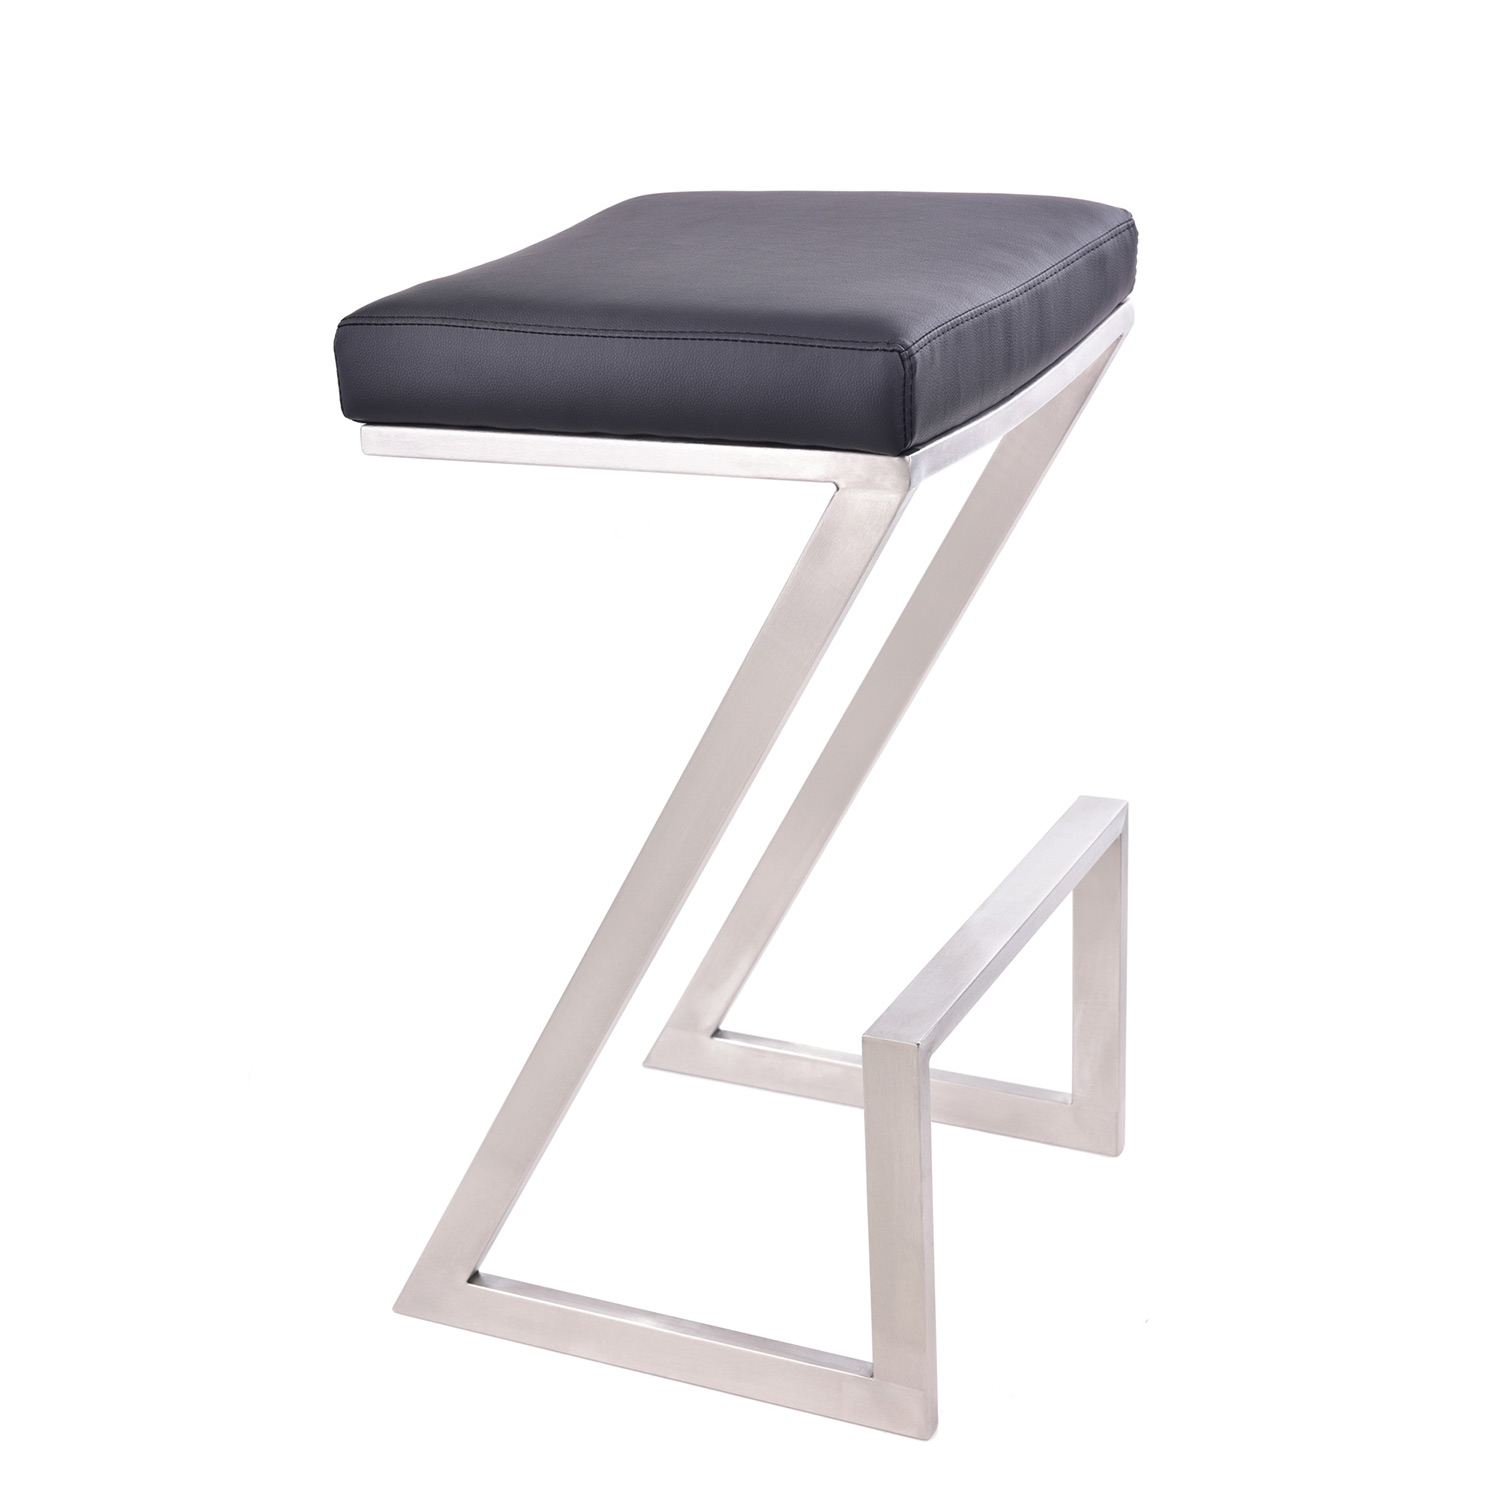 Miraculous Armen Living Atlantis 30 Inch Backless Bar Stool Black Leatherette Pabps2019 Chair Design Images Pabps2019Com